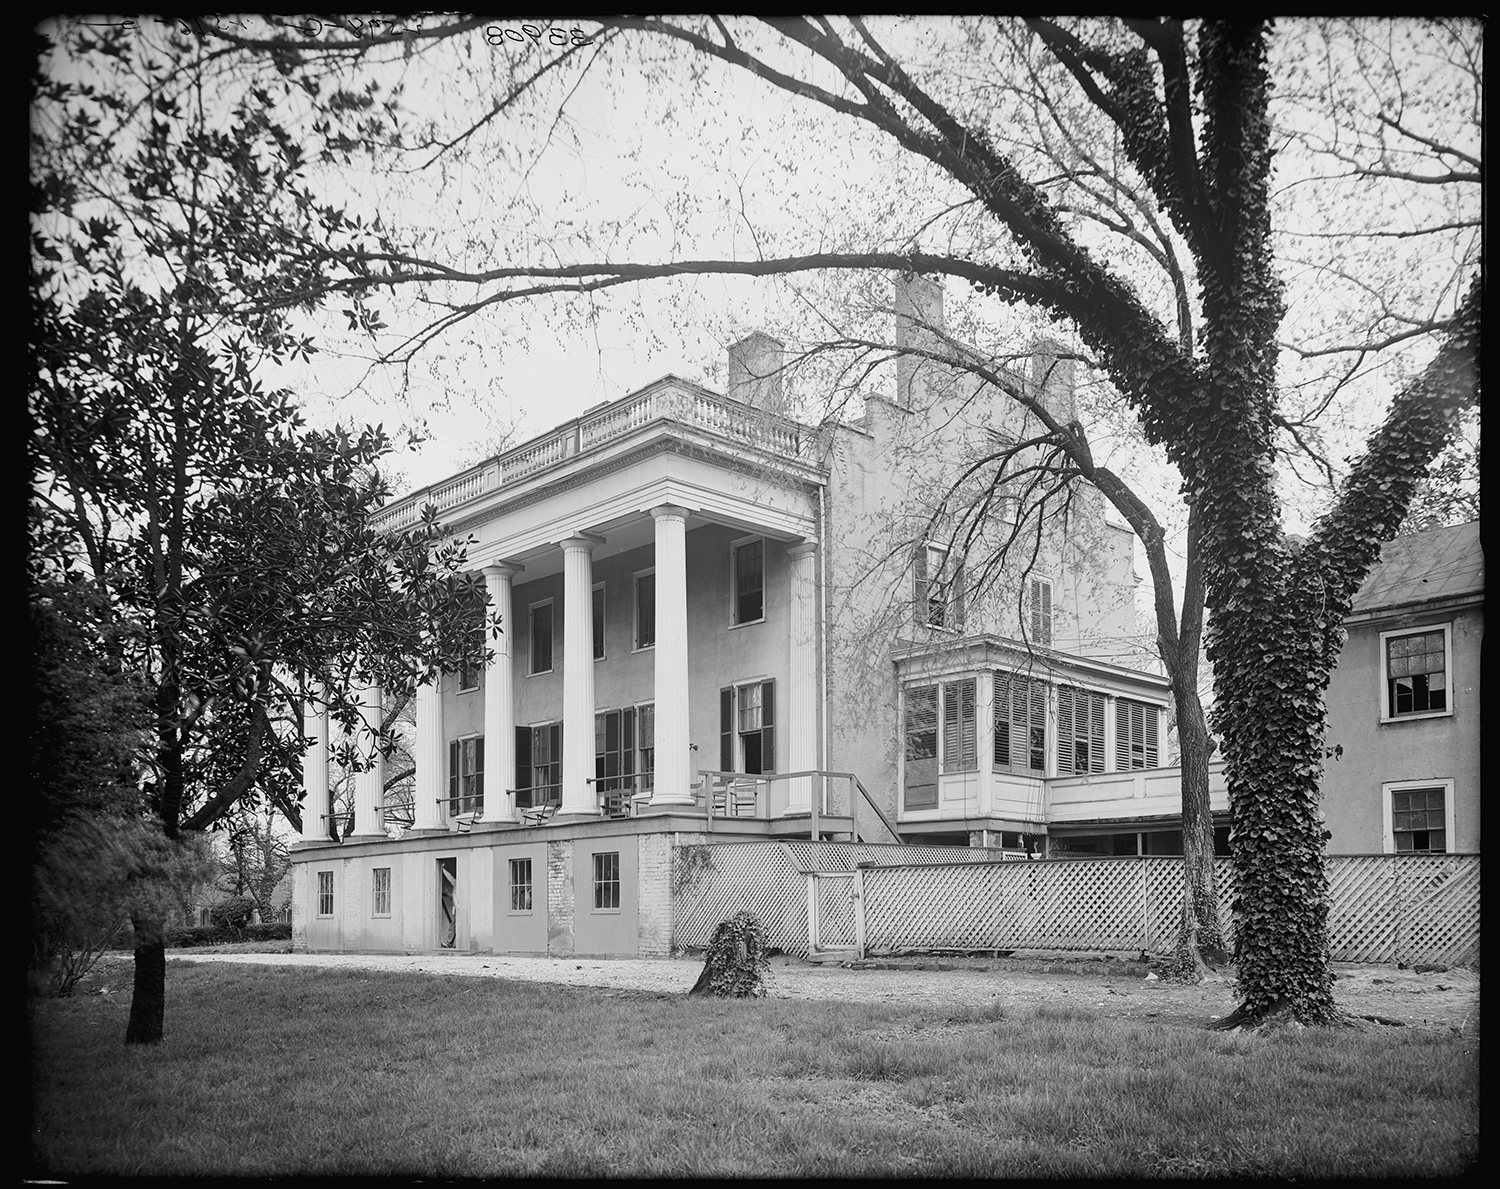 Elizabeth Van Lew's home in Richmond, Virginia, circa 1910. (Credit: Detroit Publishing Company Collection/The Library of Congress)